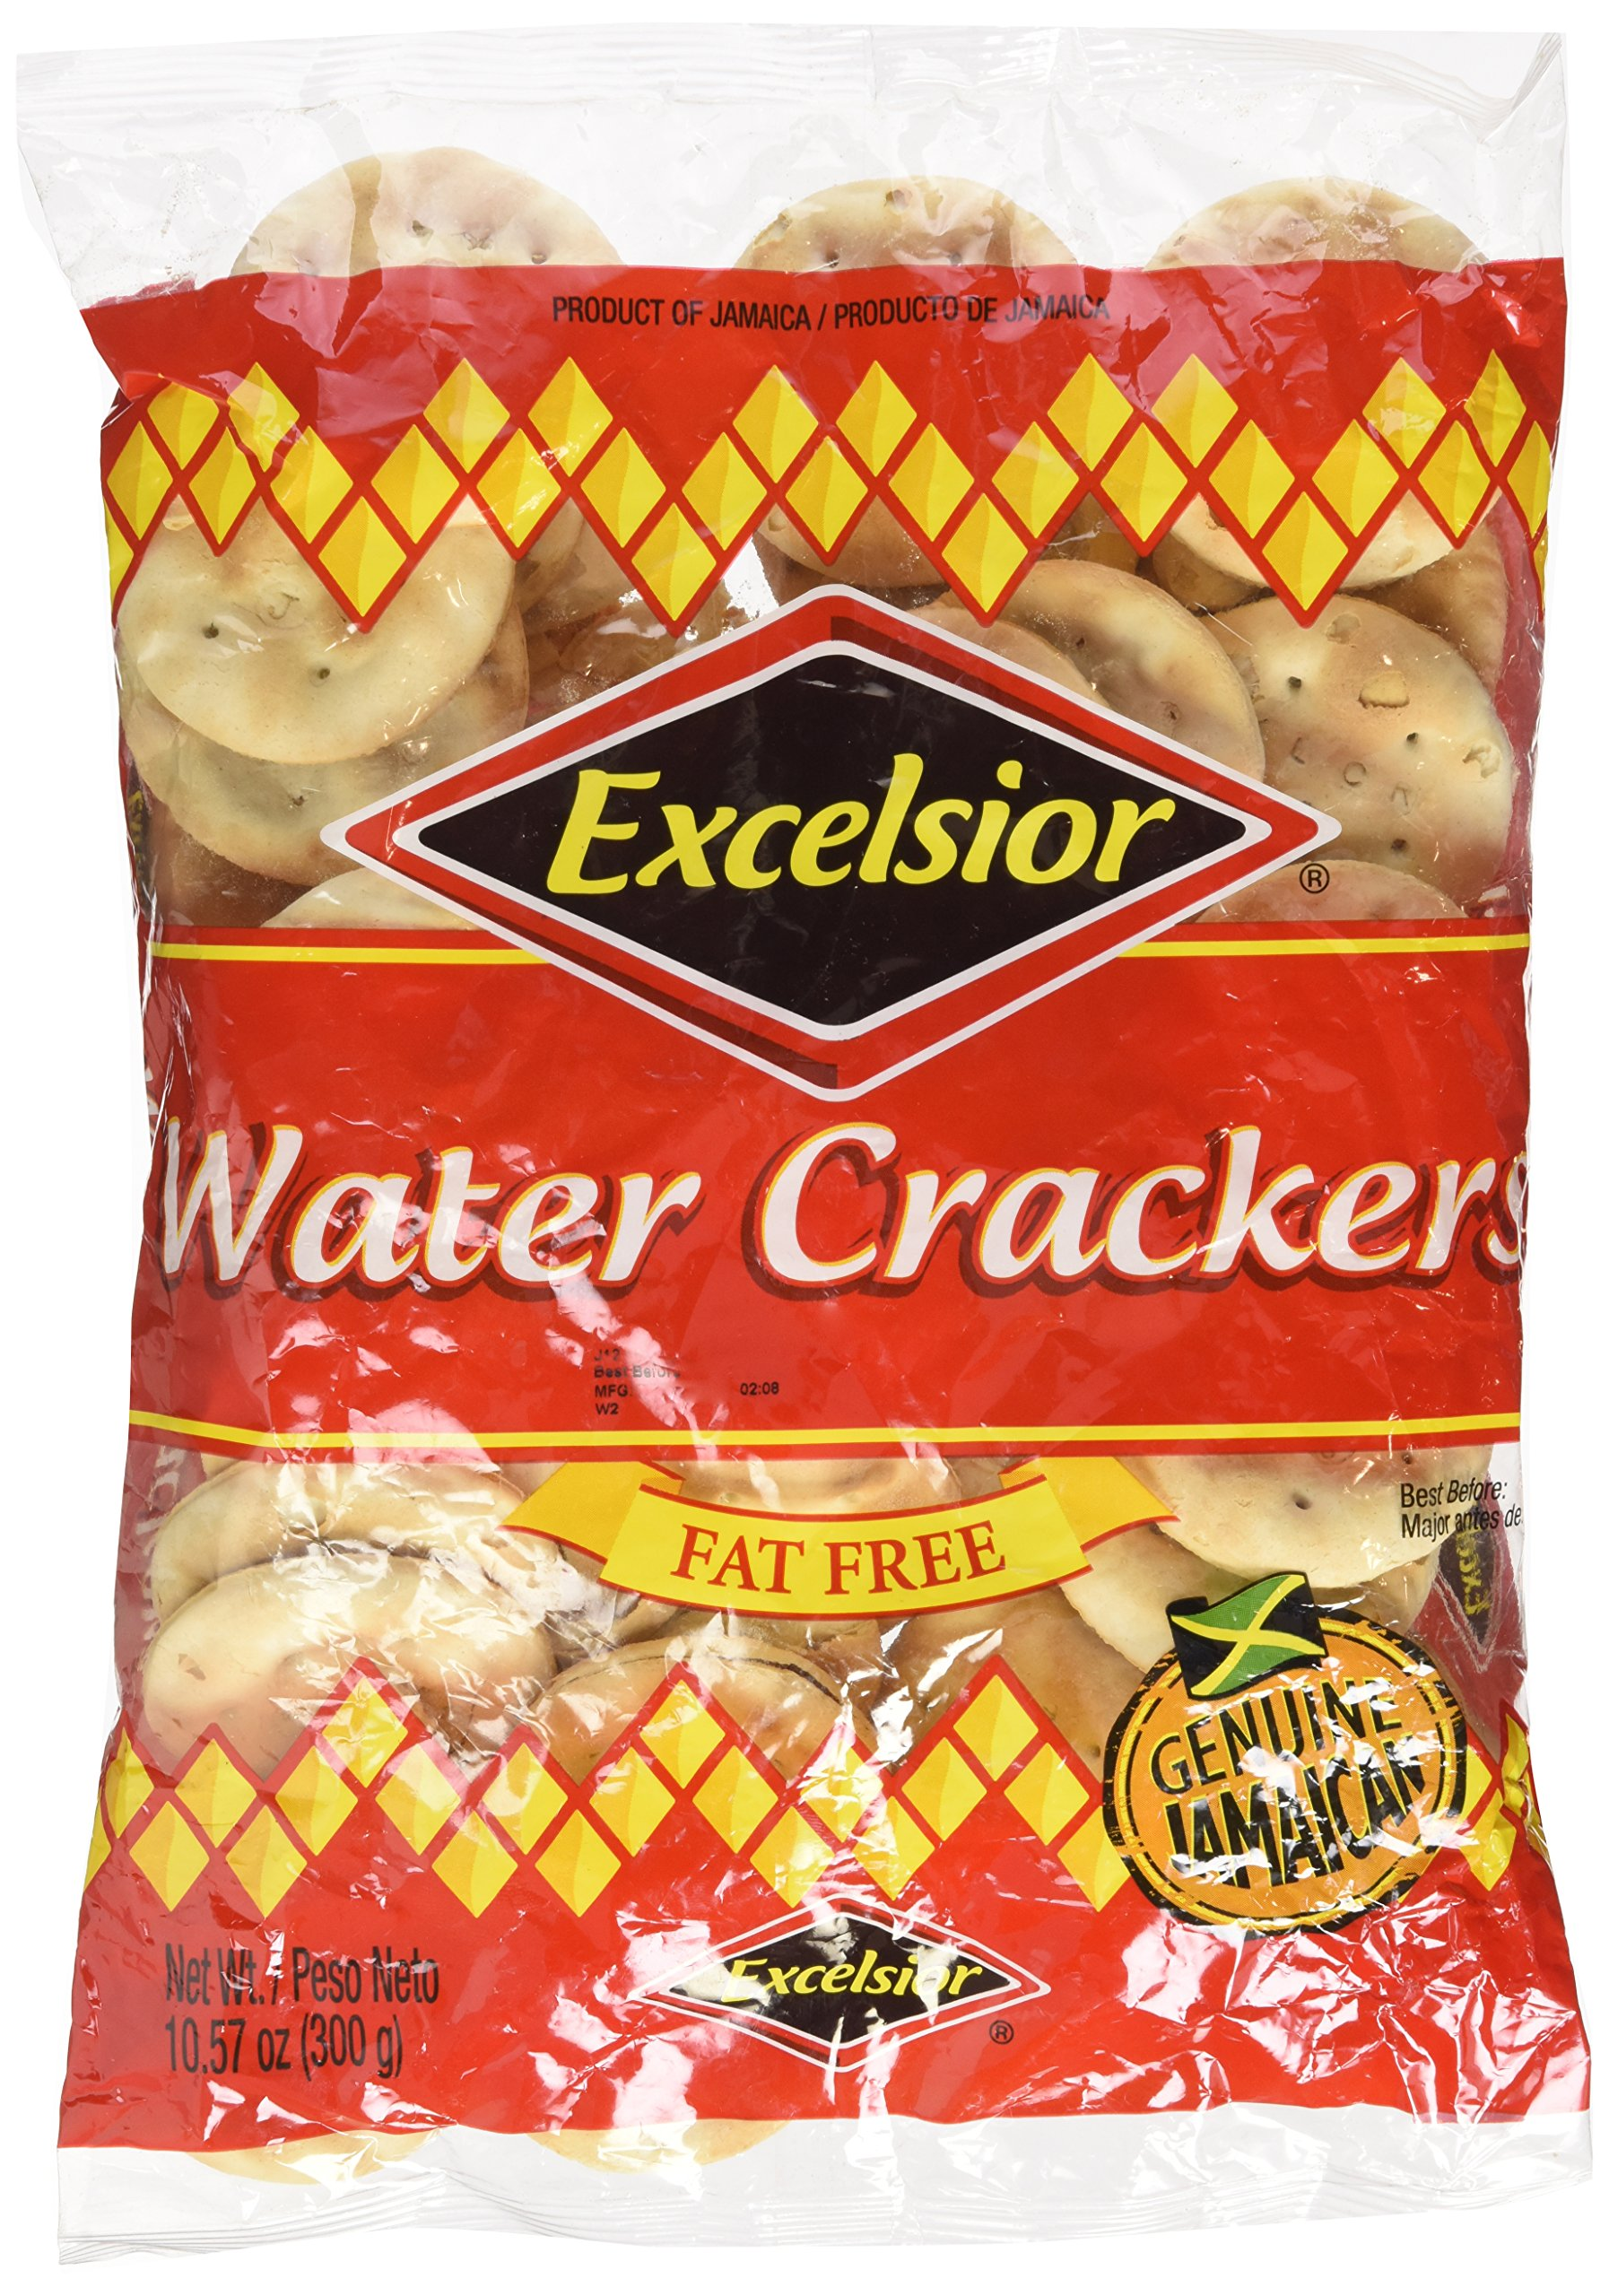 Excelsior Water Crackers, 10.57oz